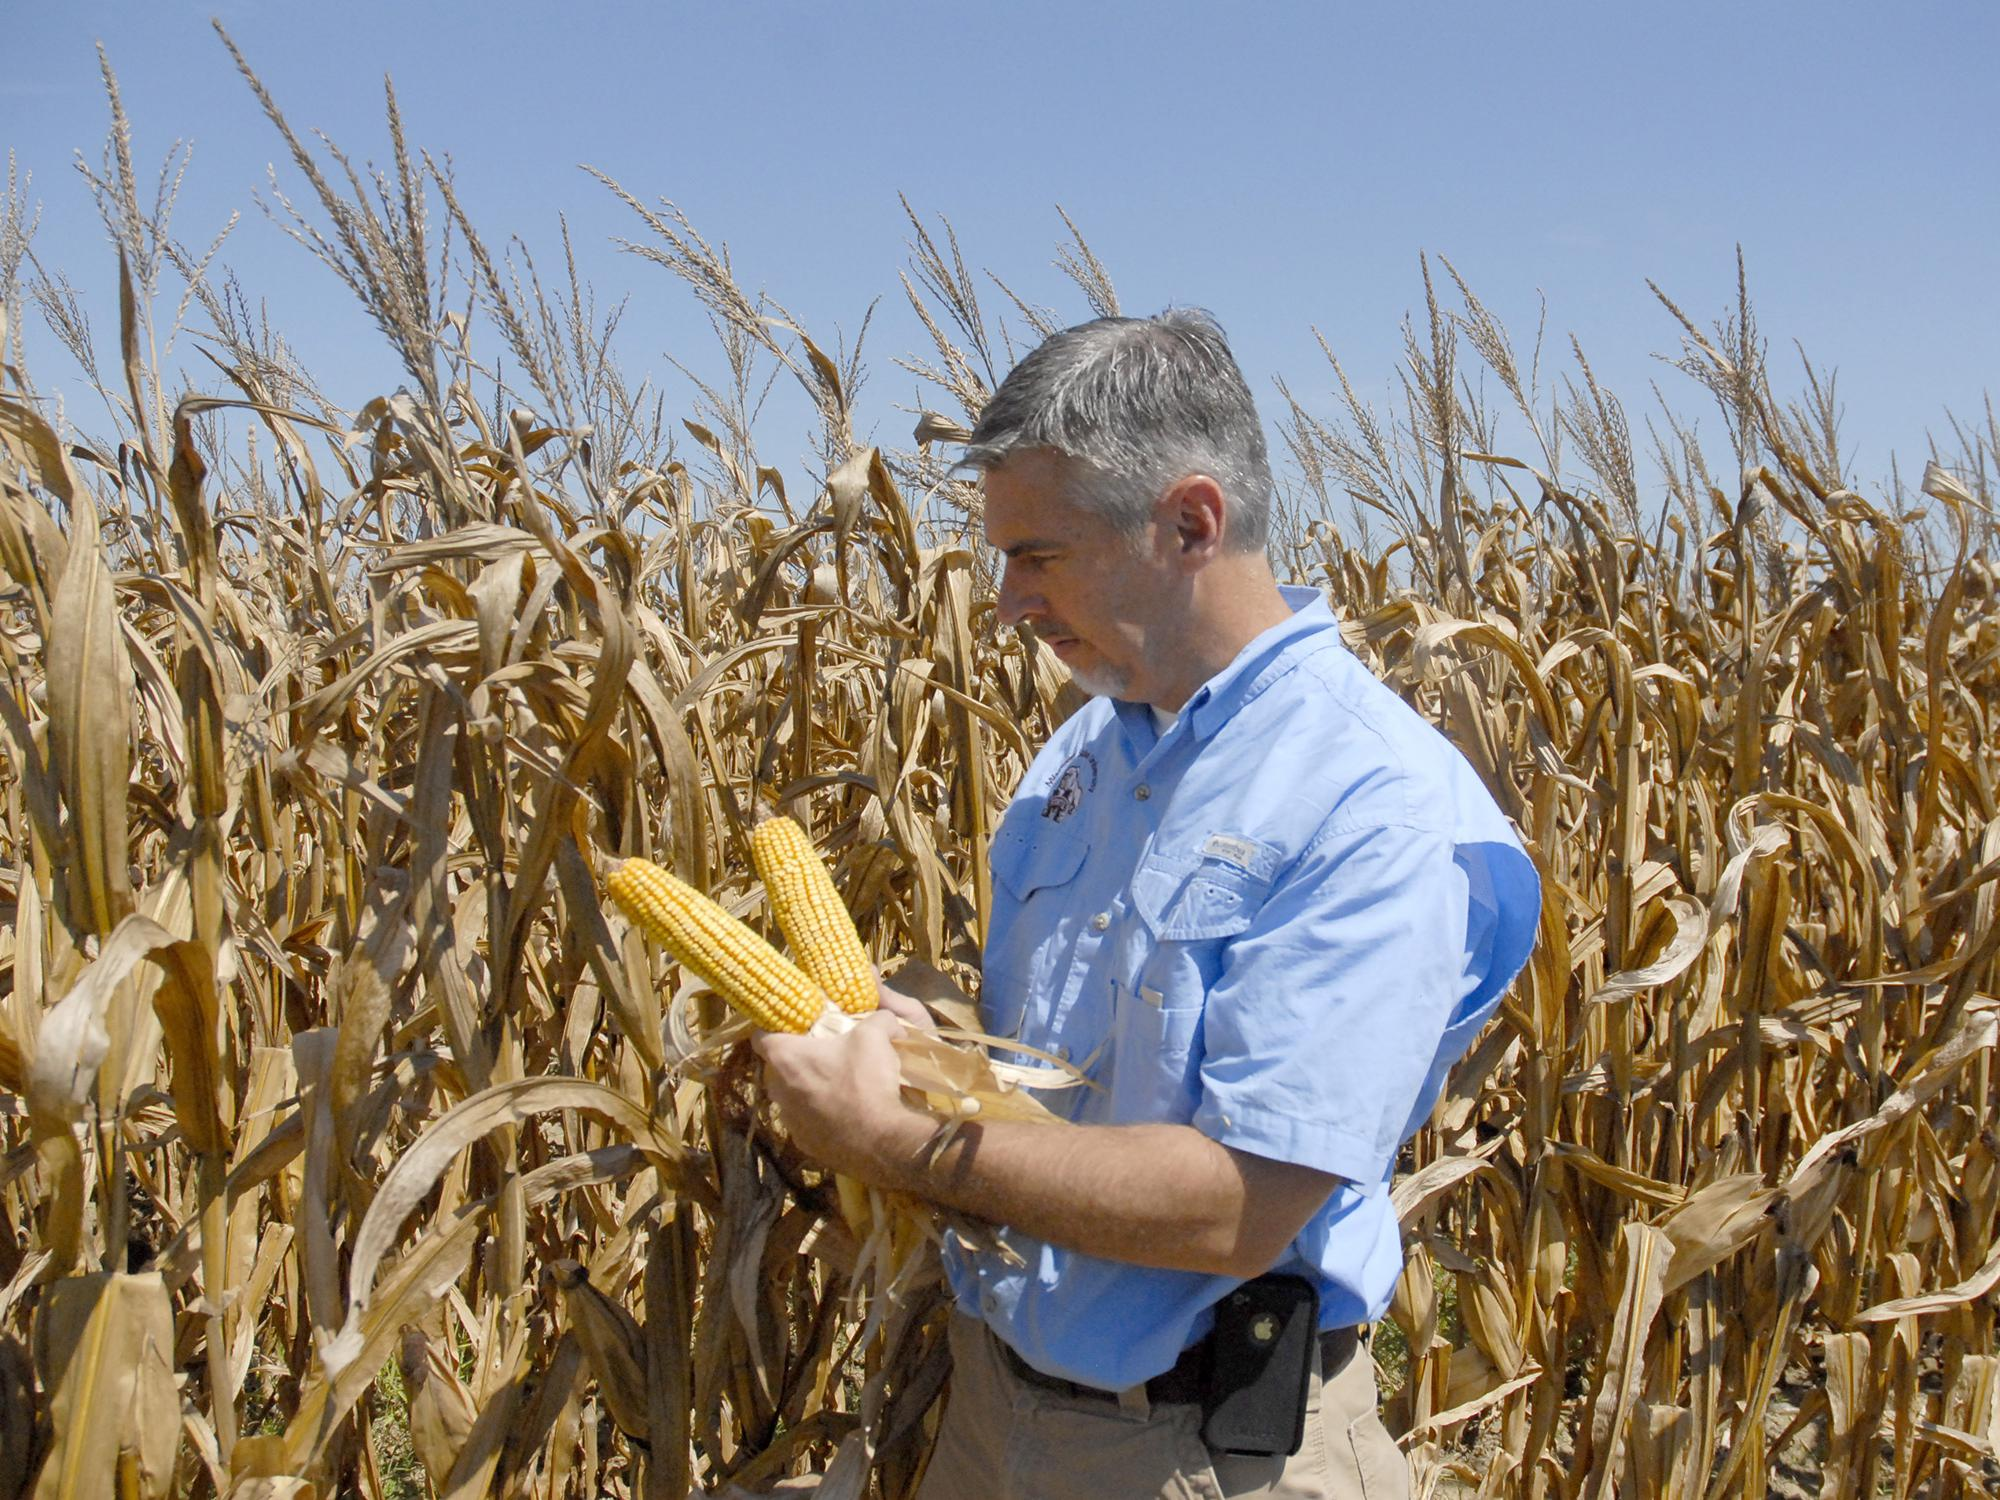 Erick Larson, corn specialist with the Mississippi State University Extension Service, examines hybrid plants in test plots located on the R.R. Foil Plant Science Research Center on Sept. 4, 2013. (Photo by MSU Ag Communications/Linda Breazeale)